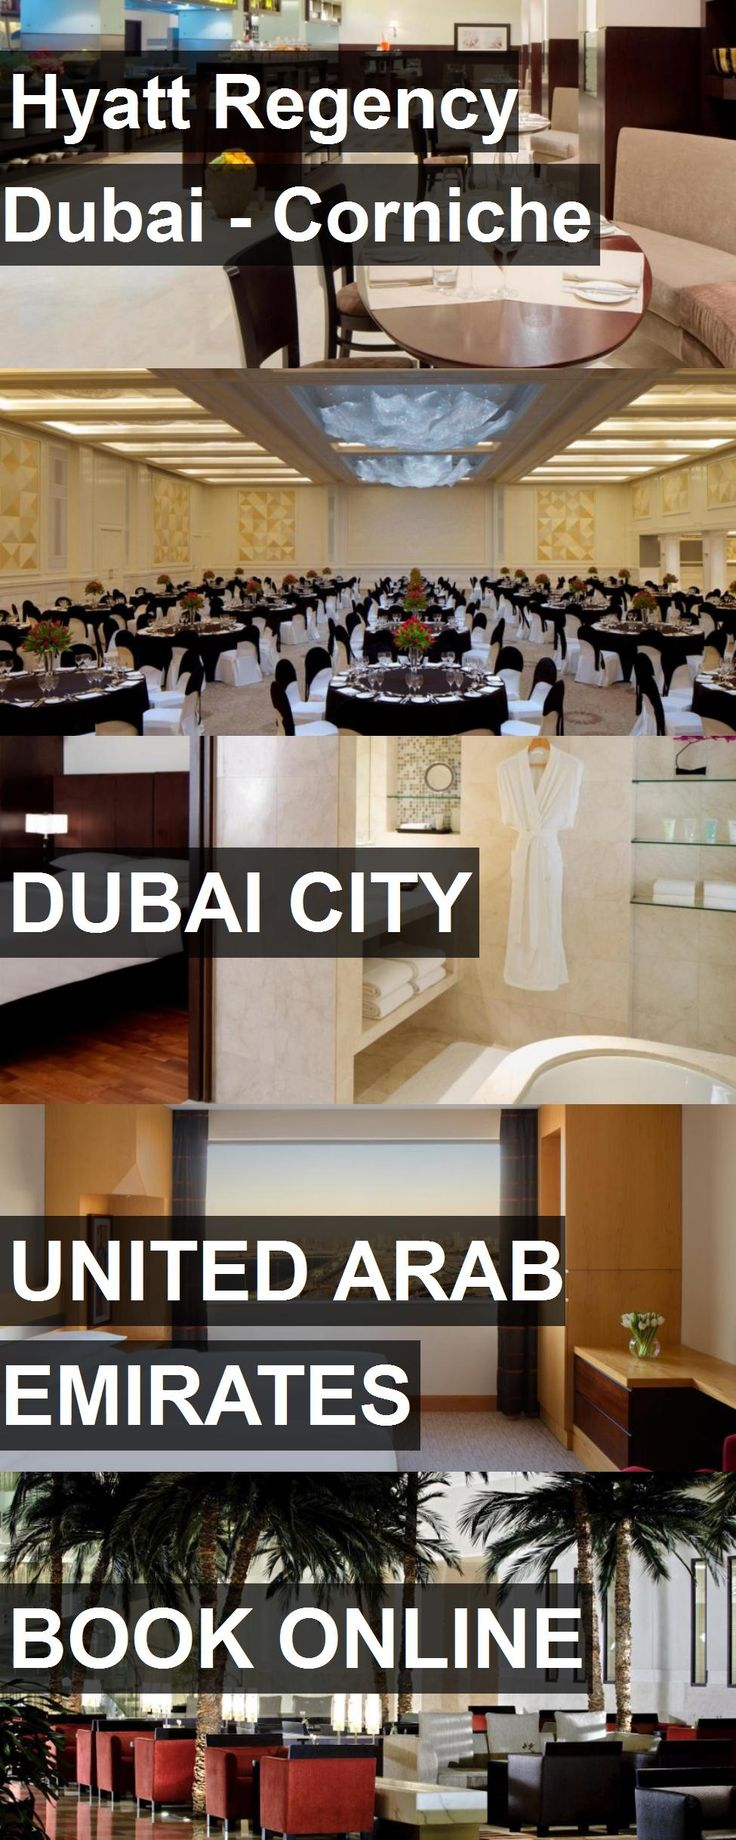 Hotel Hyatt Regency Dubai - Corniche in Dubai City, United Arab Emirates. For more information, photos, reviews and best prices please follow the link. #UnitedArabEmirates #DubaiCity #HyattRegencyDubai-Corniche #hotel #travel #vacation